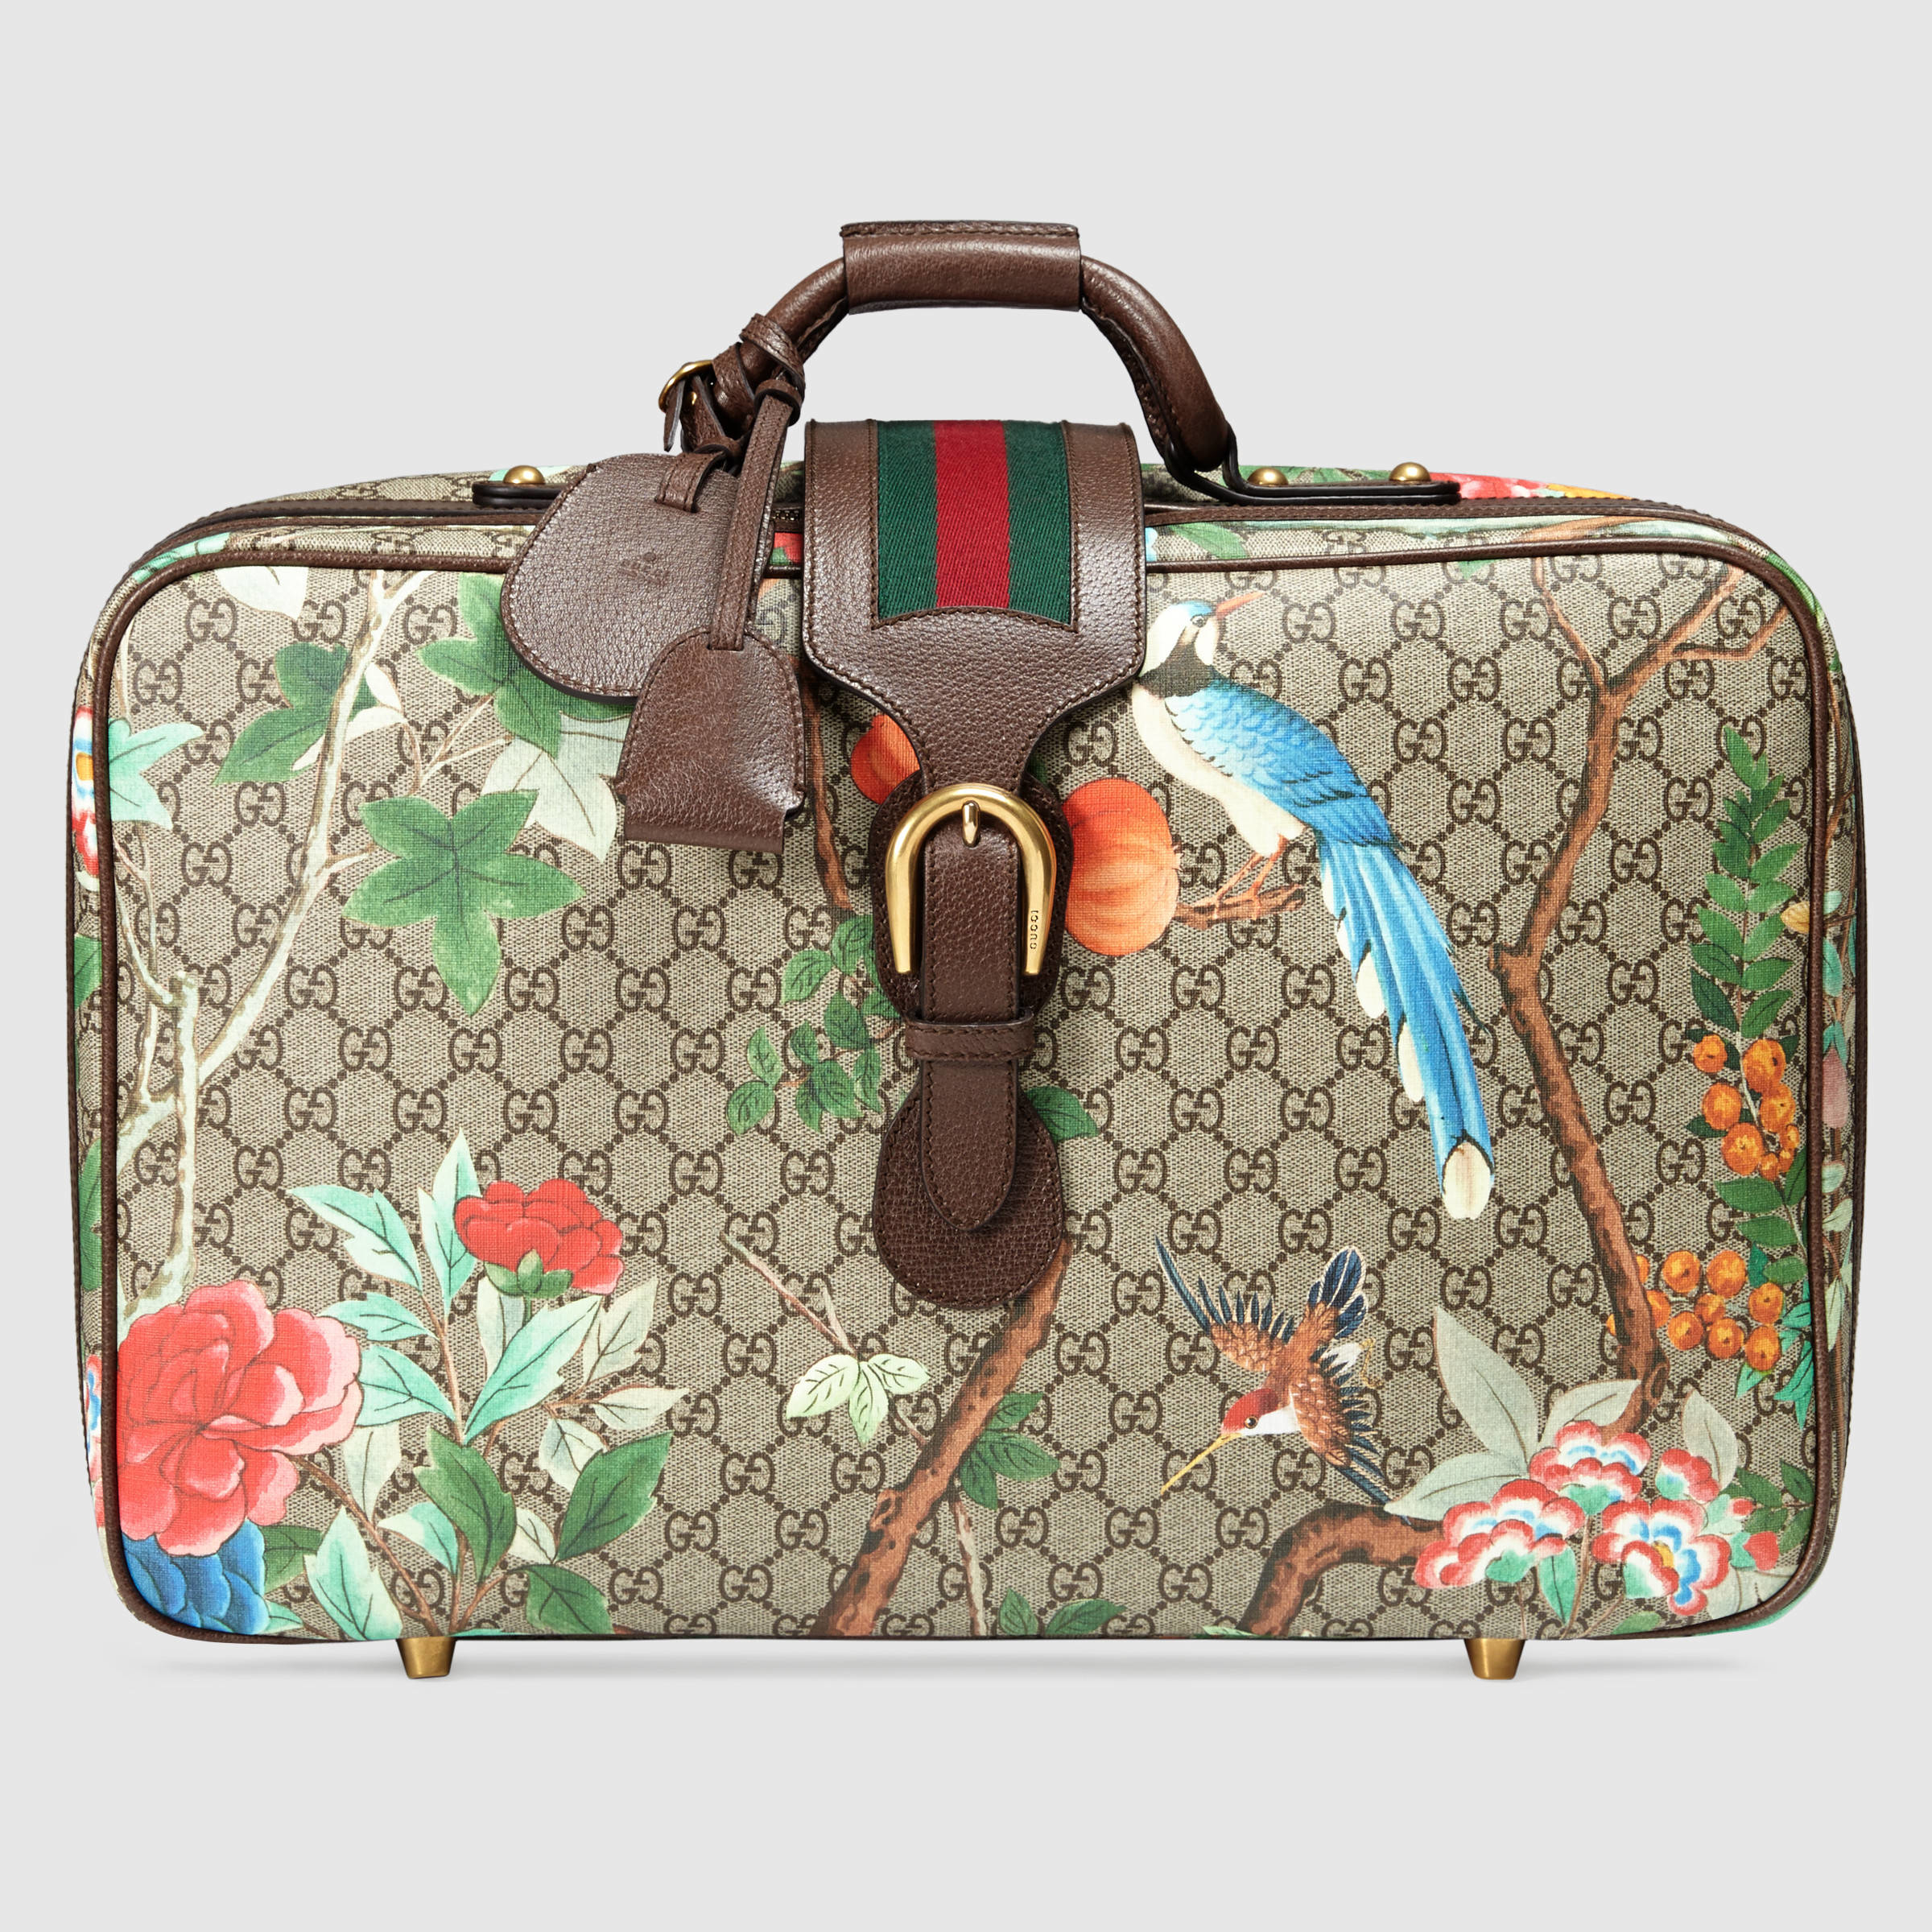 b670a891277f Gucci Luggage Bag Uk | Stanford Center for Opportunity Policy in ...